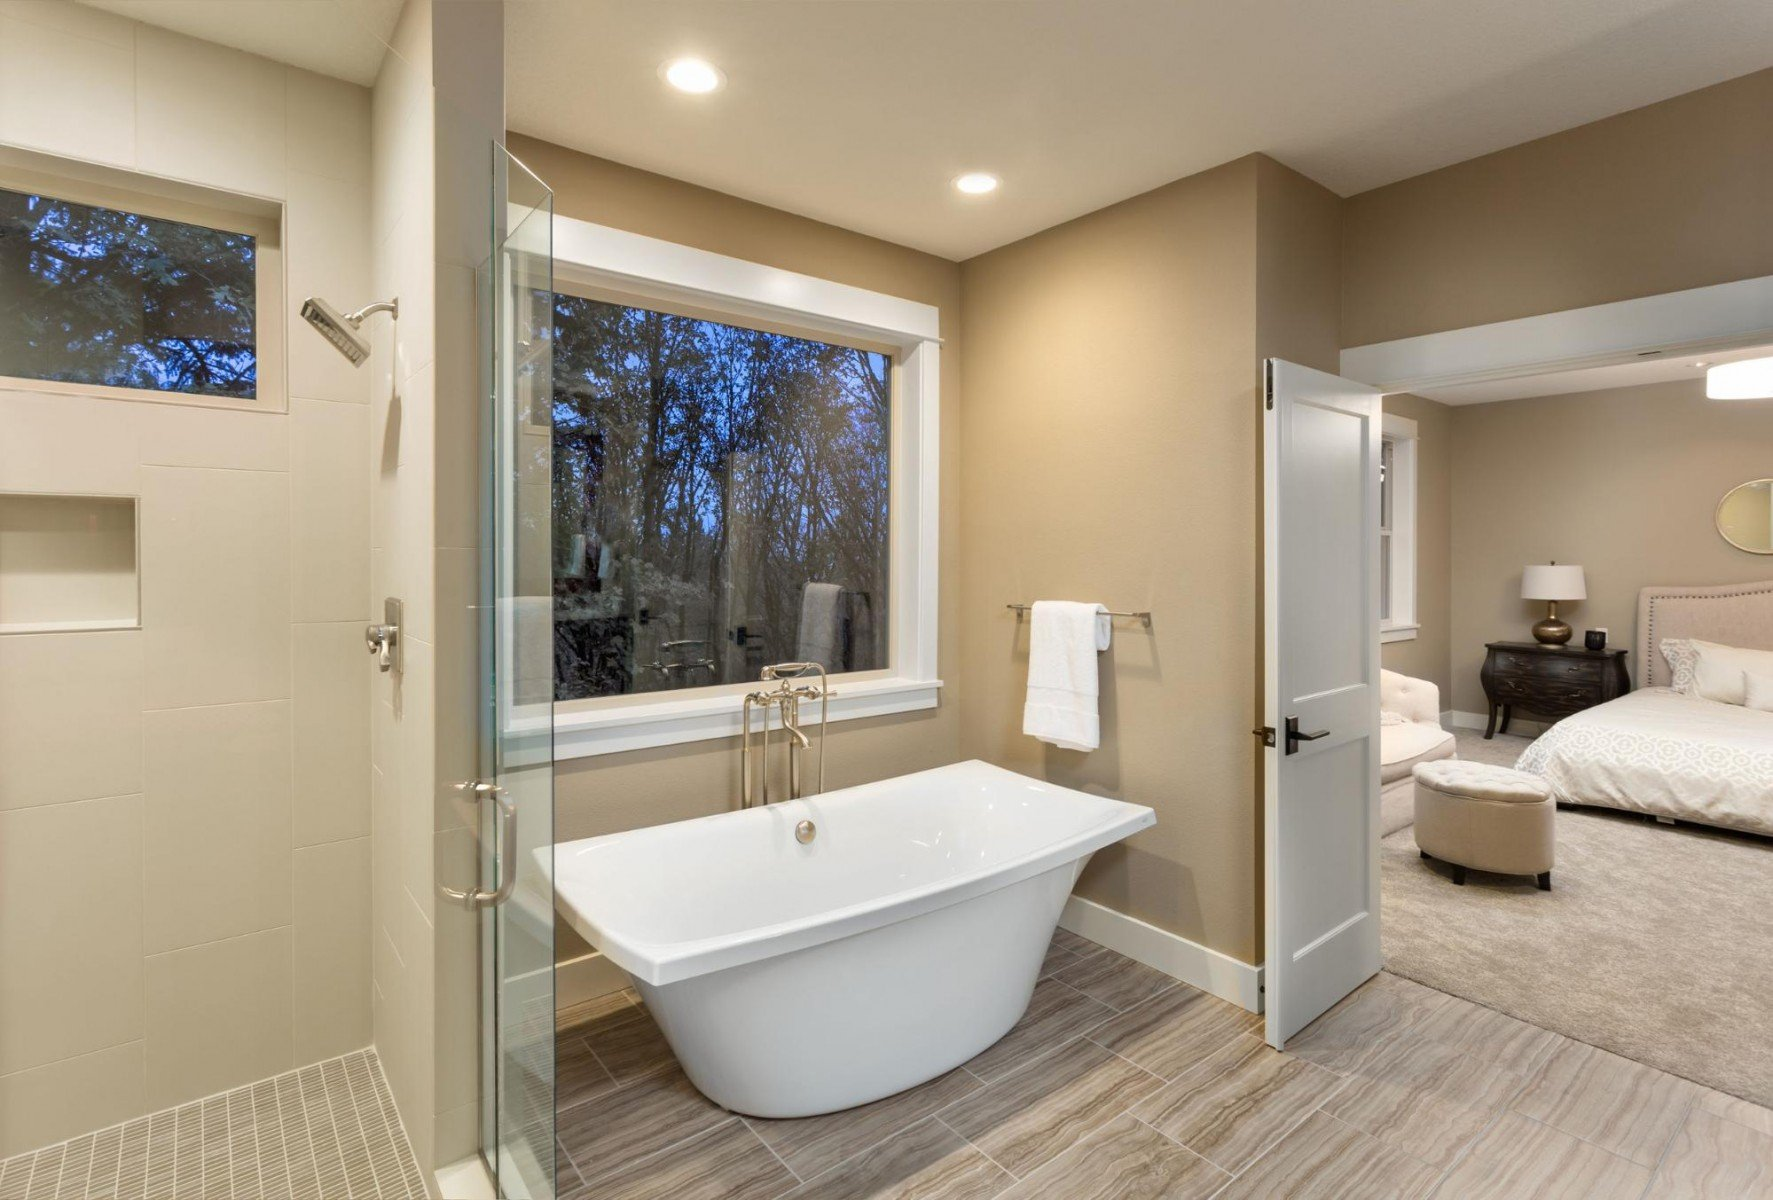 Bathtub in the Bedroom? How to Design an Open Concept Bathroom